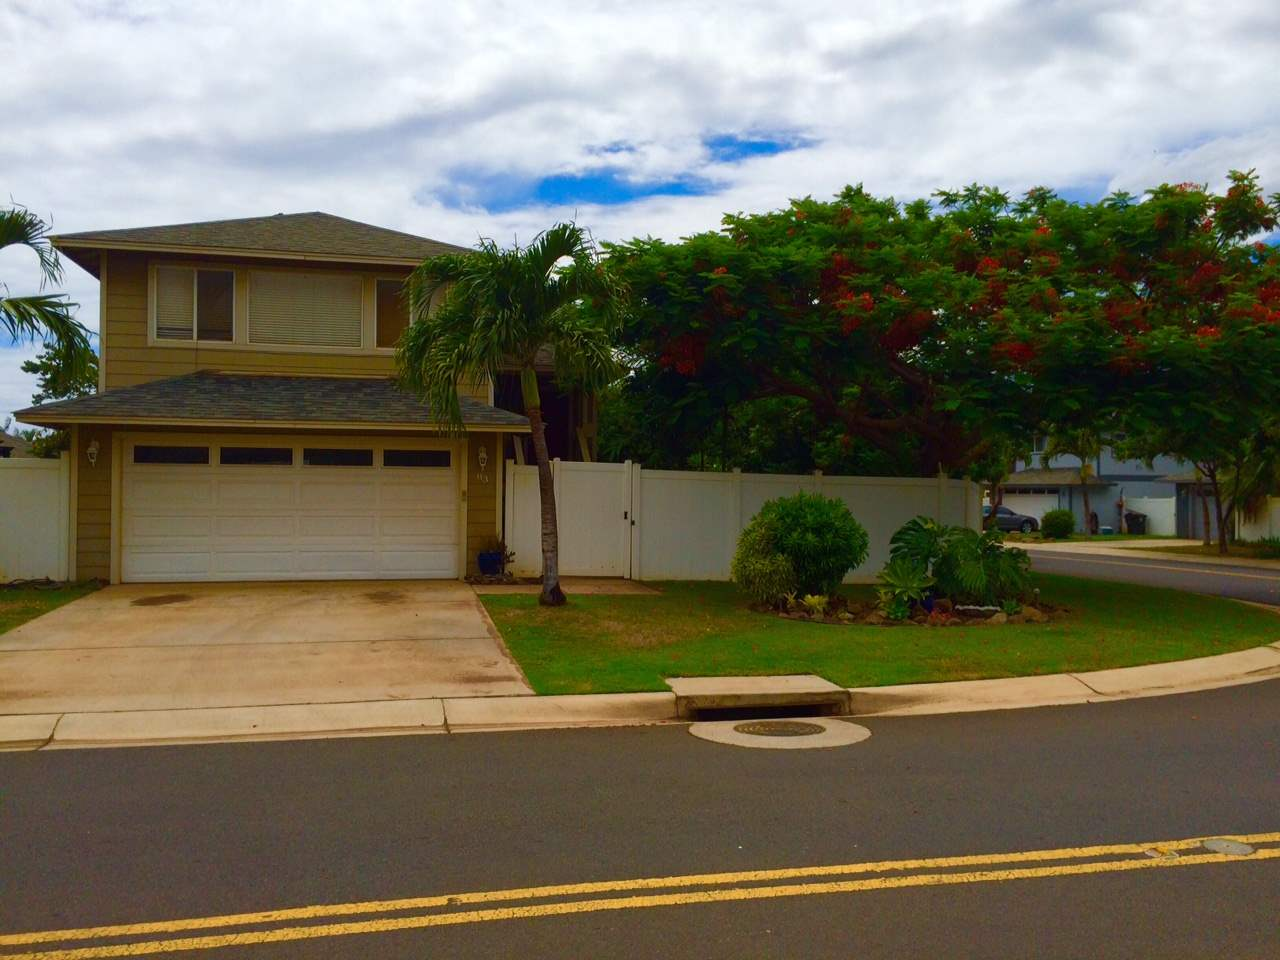 83 Polale St in Piilani Village - $625,000 - Kihei - MLS ID 365699 ...